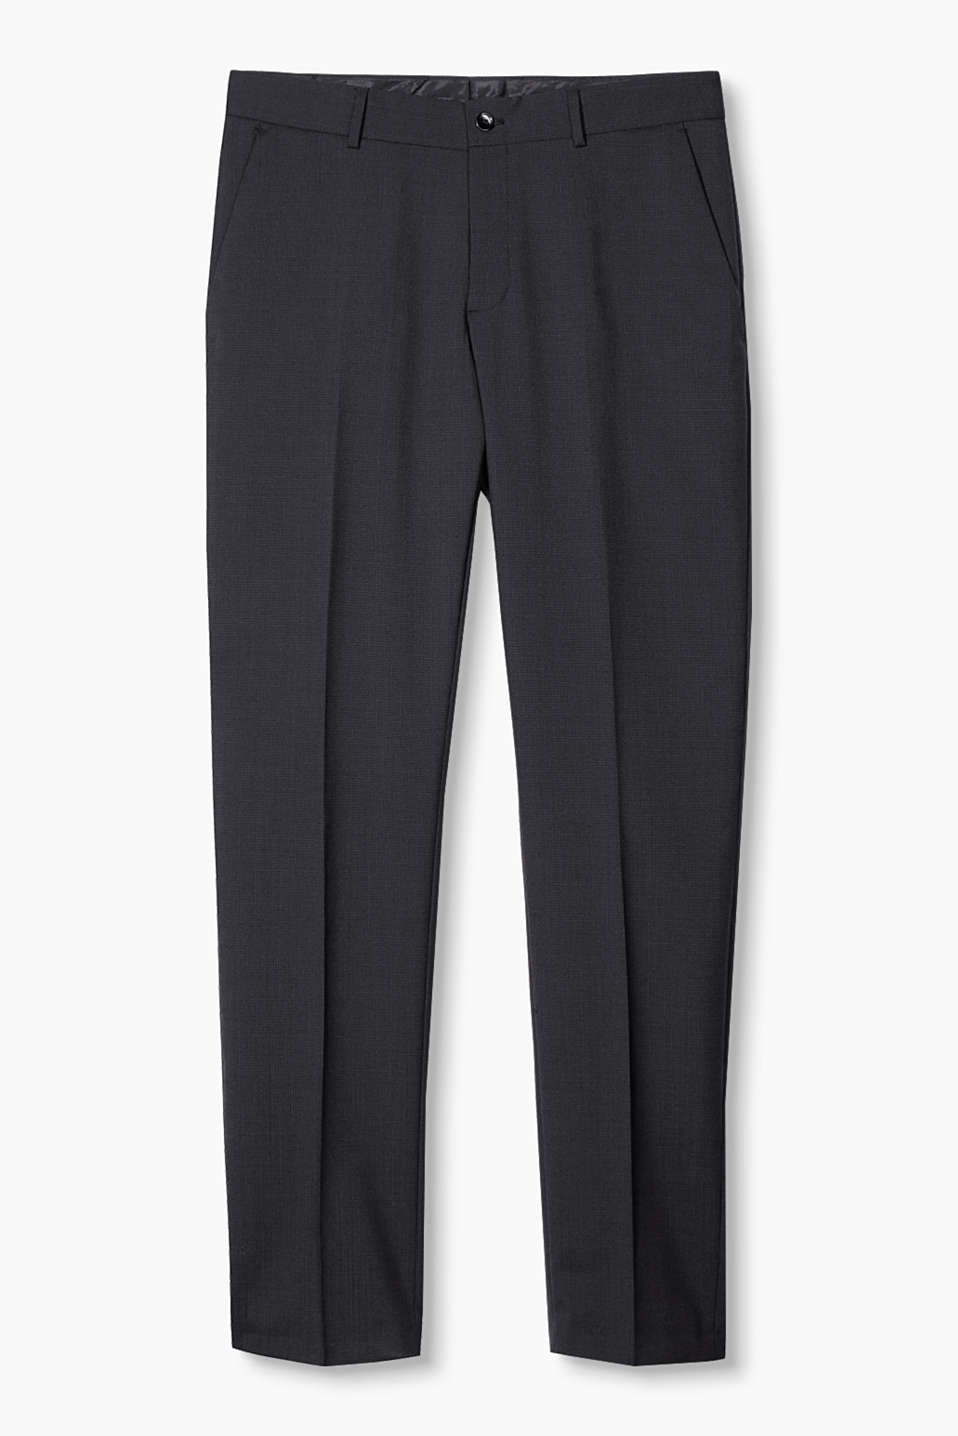 premium suit trousers with small thread checks